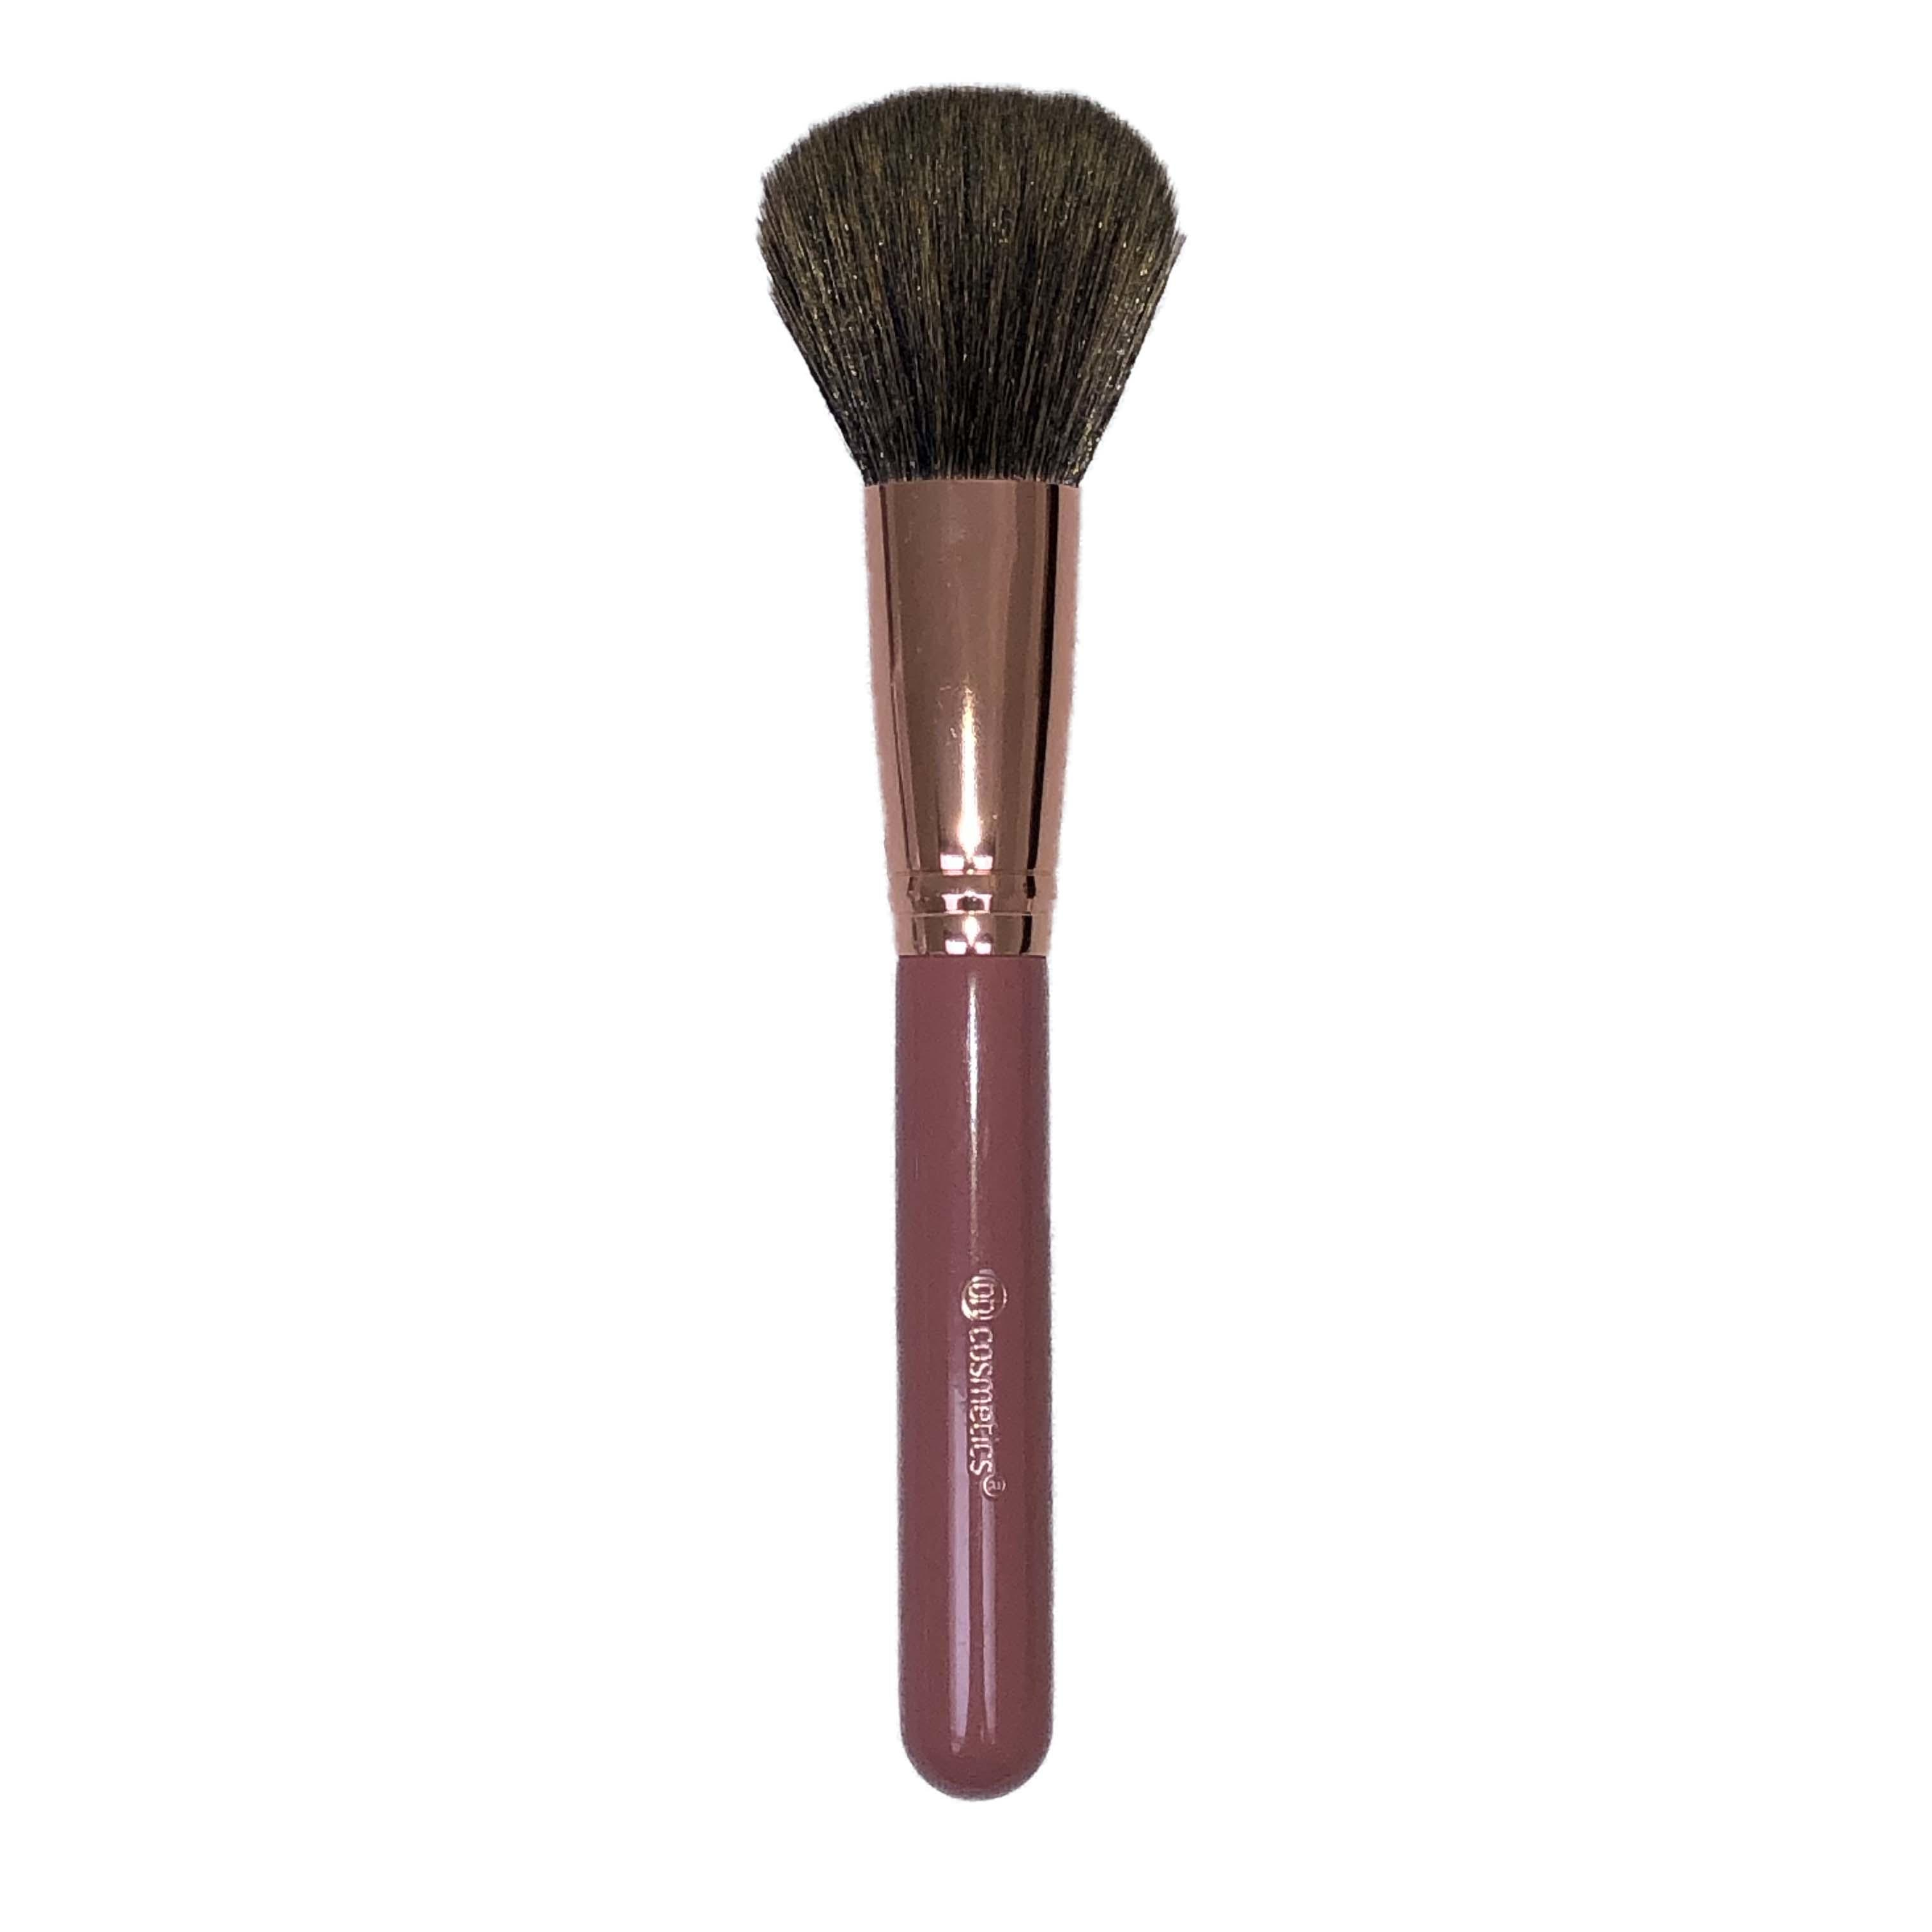 BH Cosmetics Jumbo Rounded Fluffy Face Brush Pink